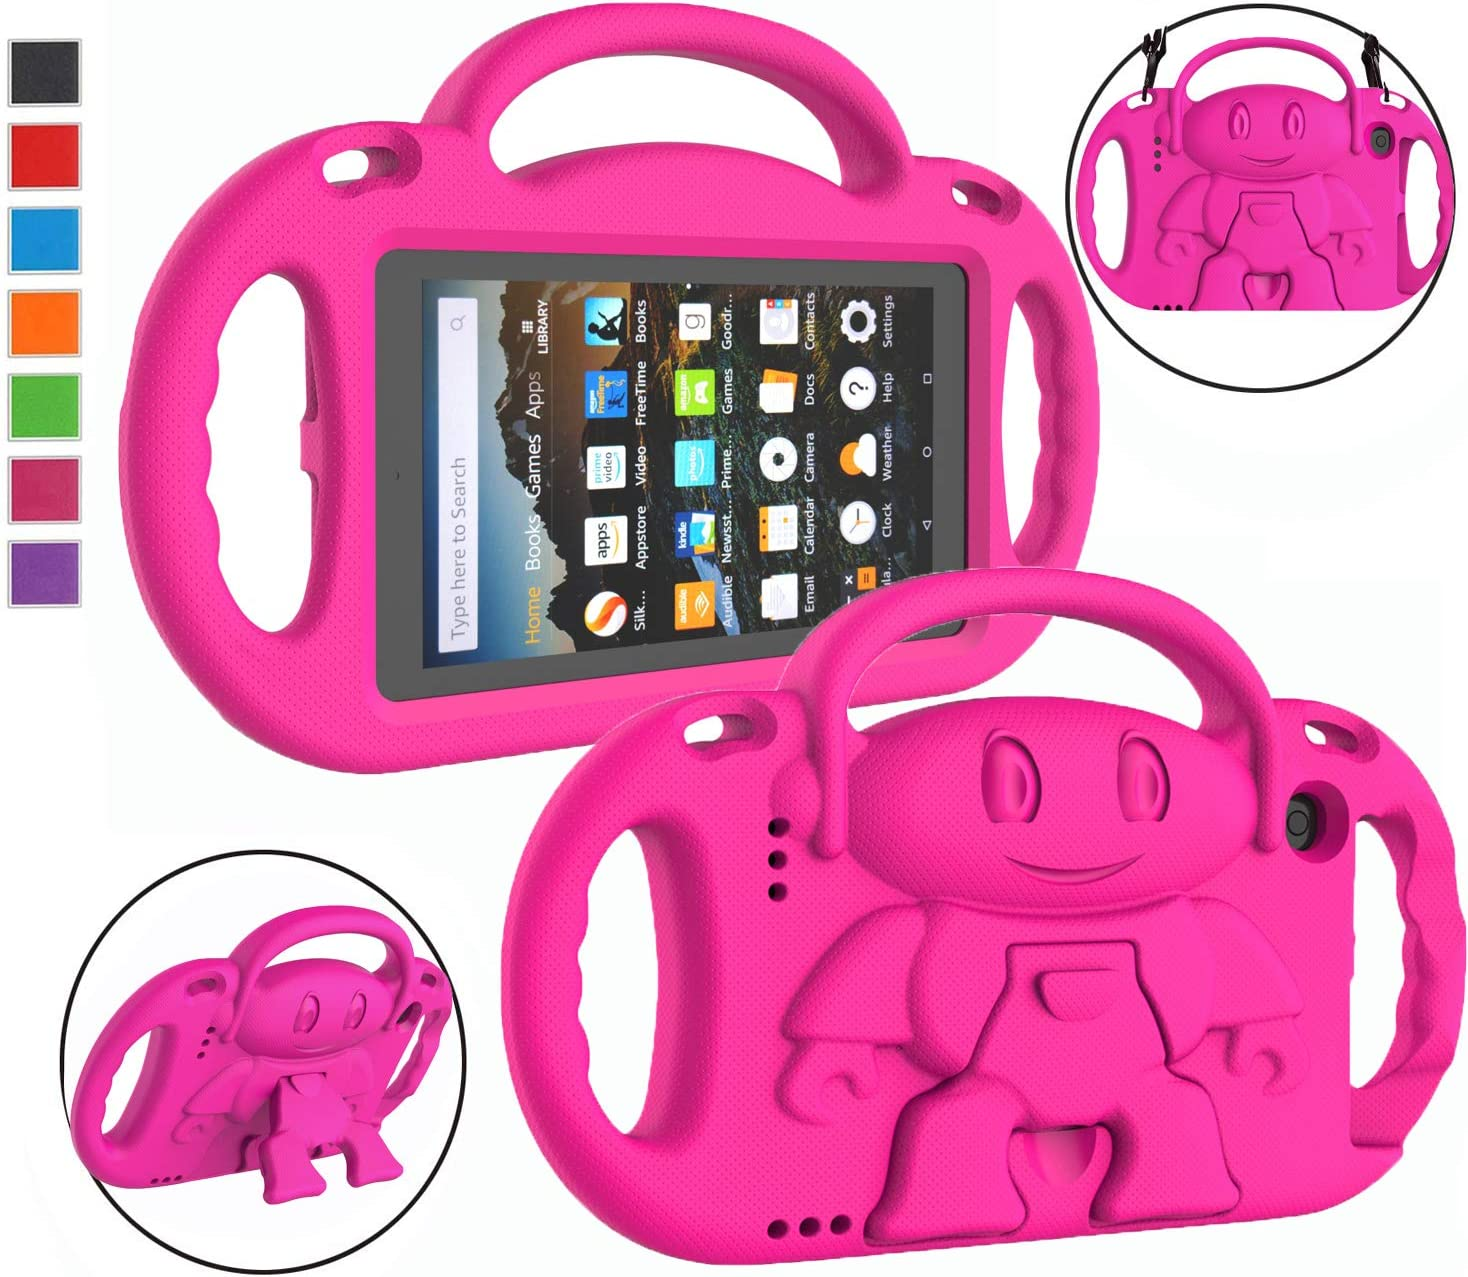 LTROP Kids Case for Amazon Kindle Fire 7 Tablet (9th Generation - 2019 Release) - Shockproof Handle Friendly Kids Stand Case with Shoulder Strap for All-New Amazon Fire 7 2019 & 2017 (7 Inch Display) - Rose